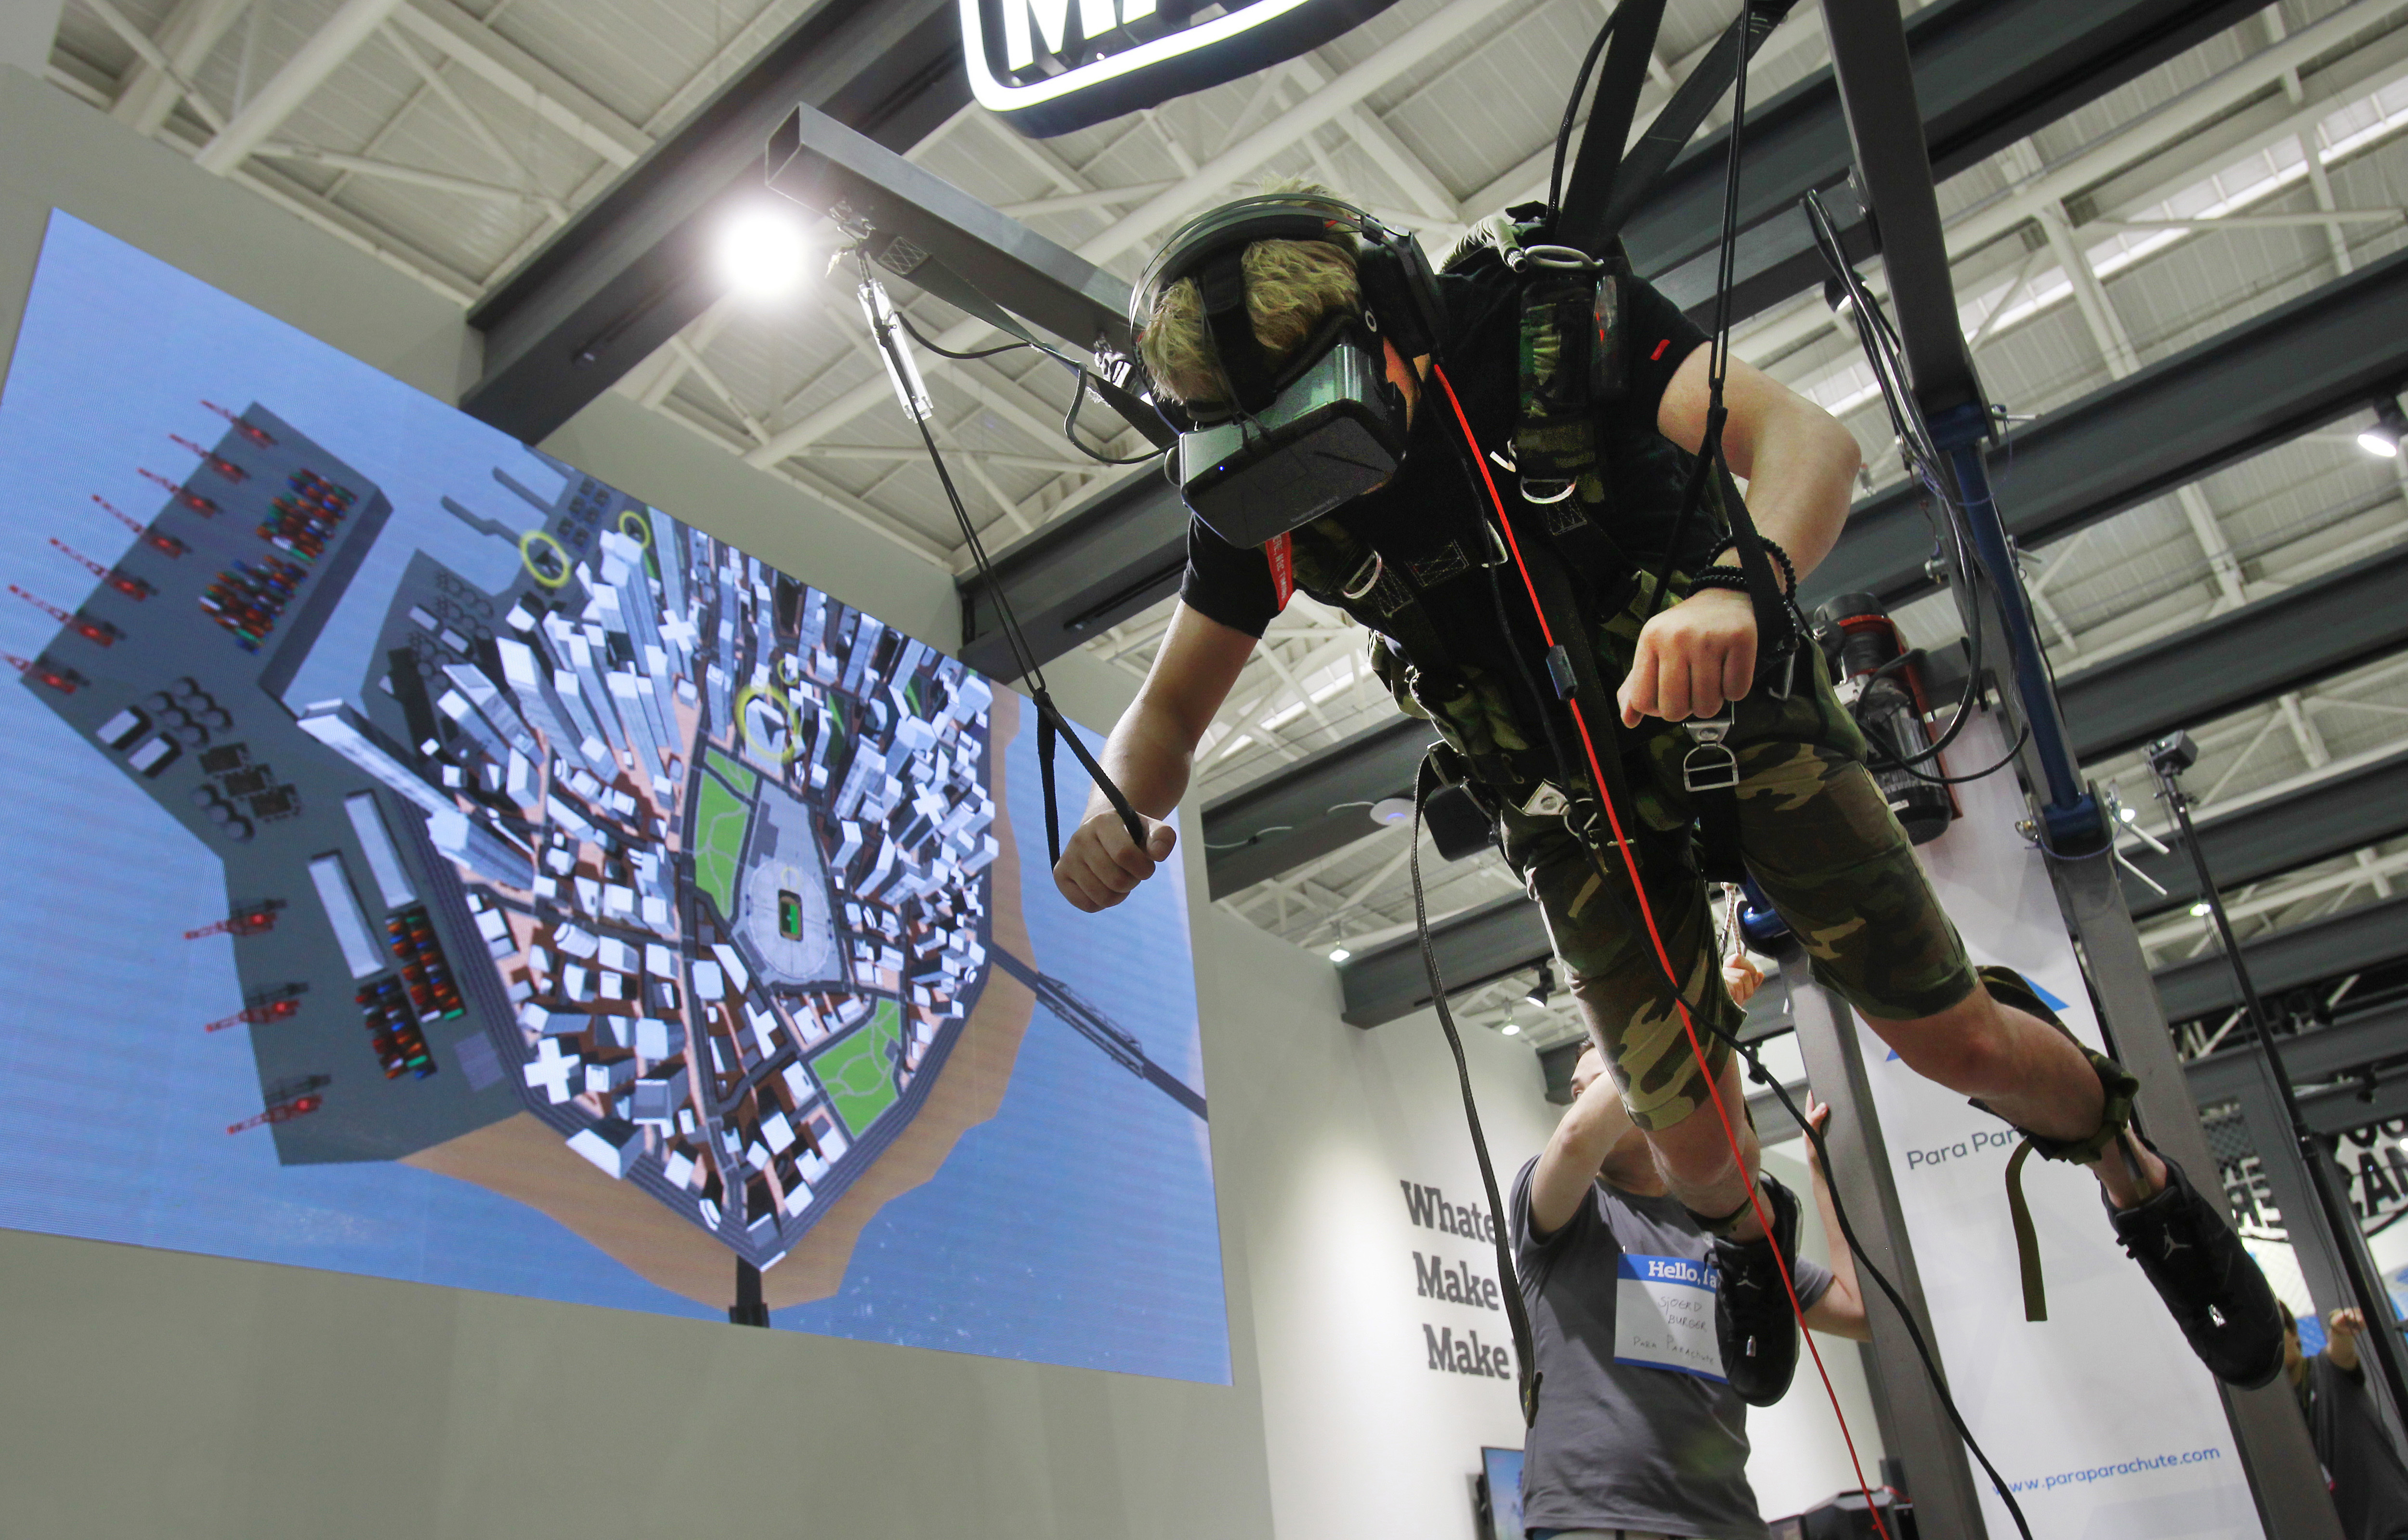 D Virtual Reality Exhibition : Musk we re probably living in a video game the future